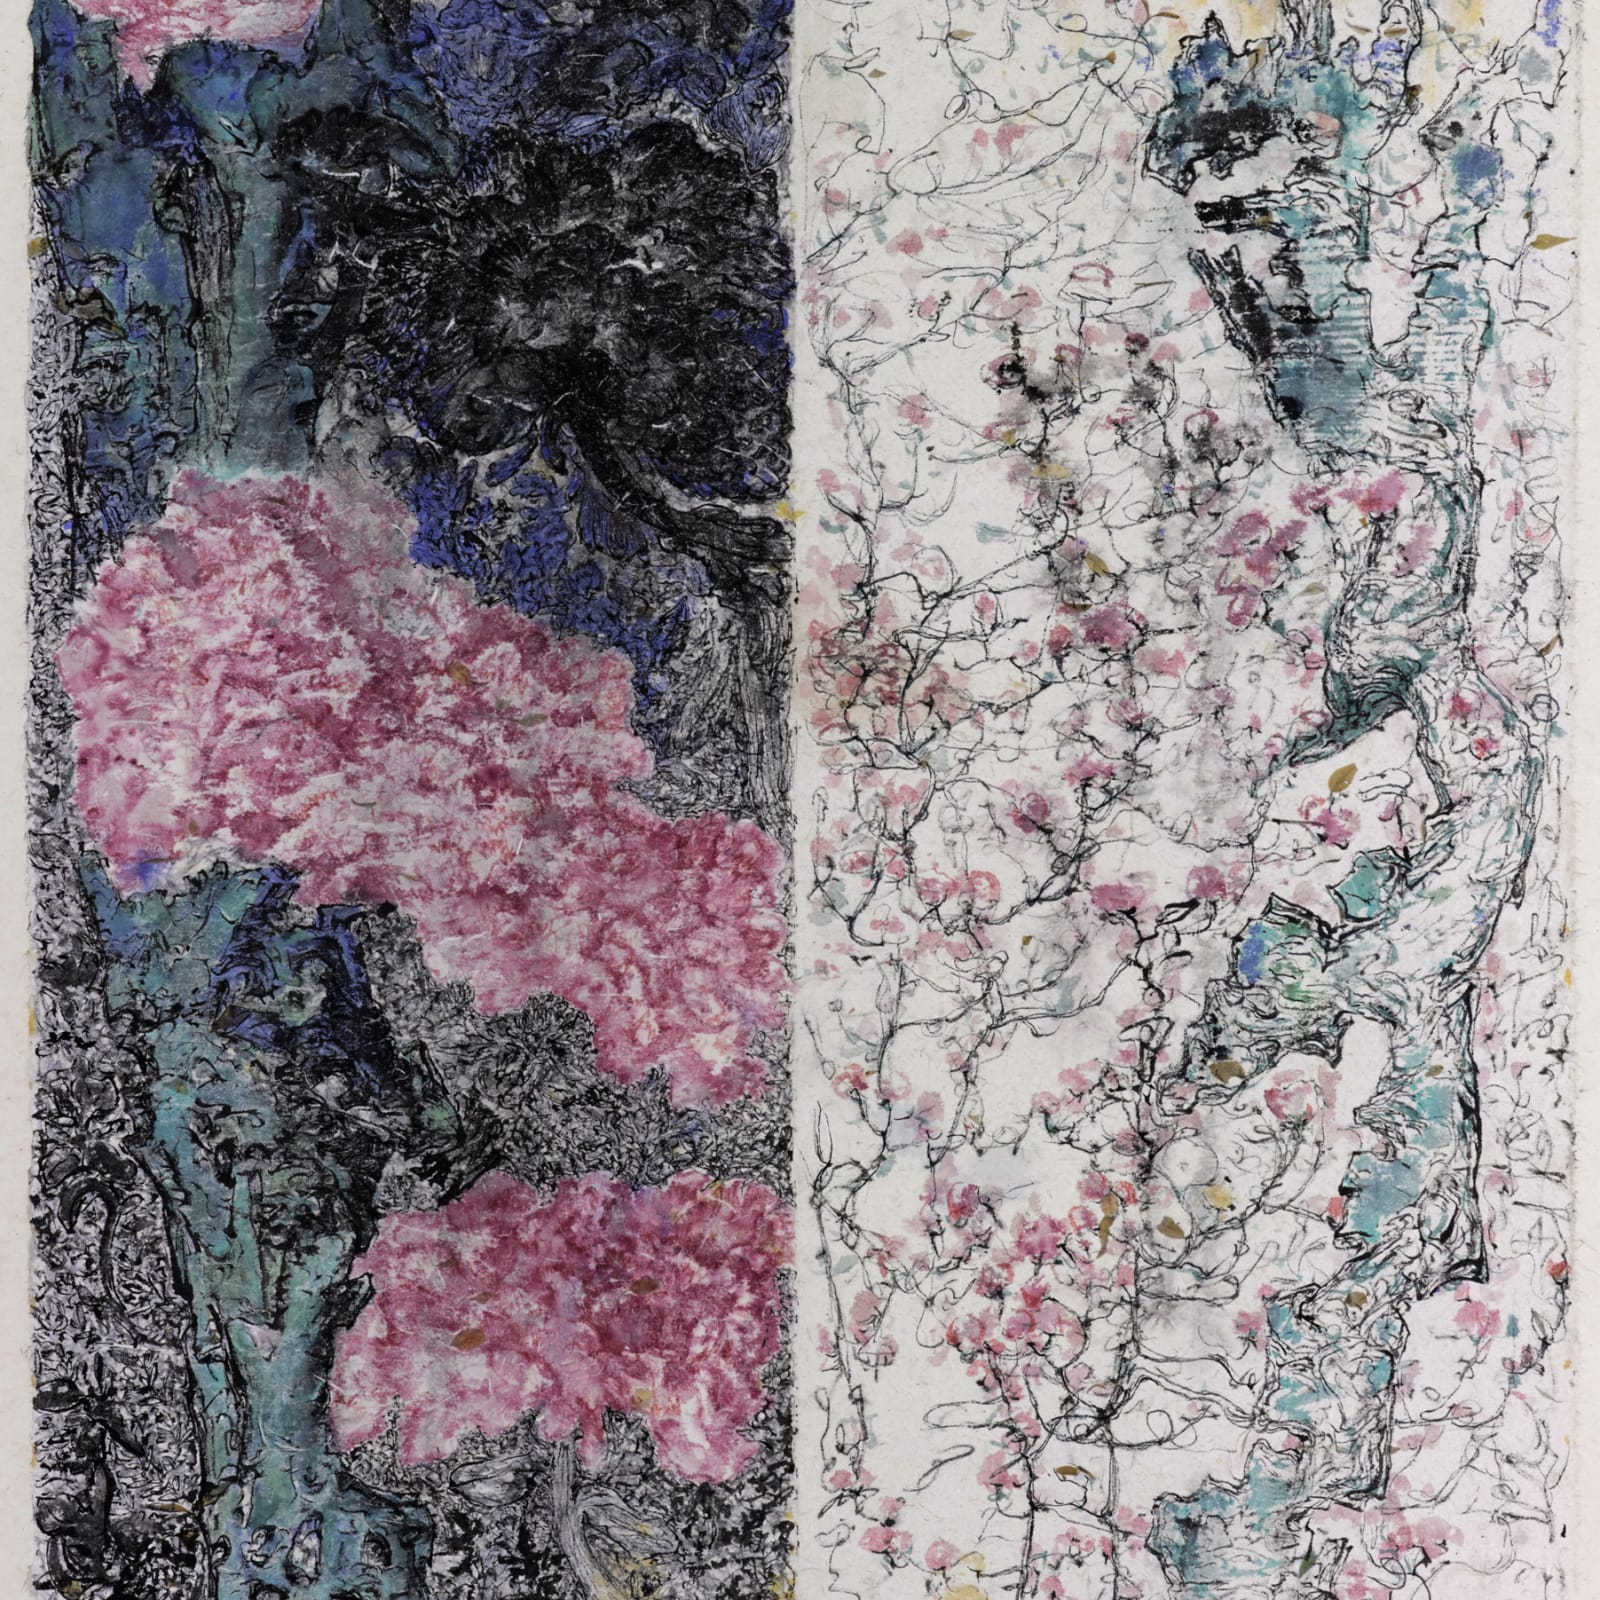 Peng Kanglong 彭康隆, Wild Garden with Peonies and Vines 乱花之牡丹与藤蔓, 2008